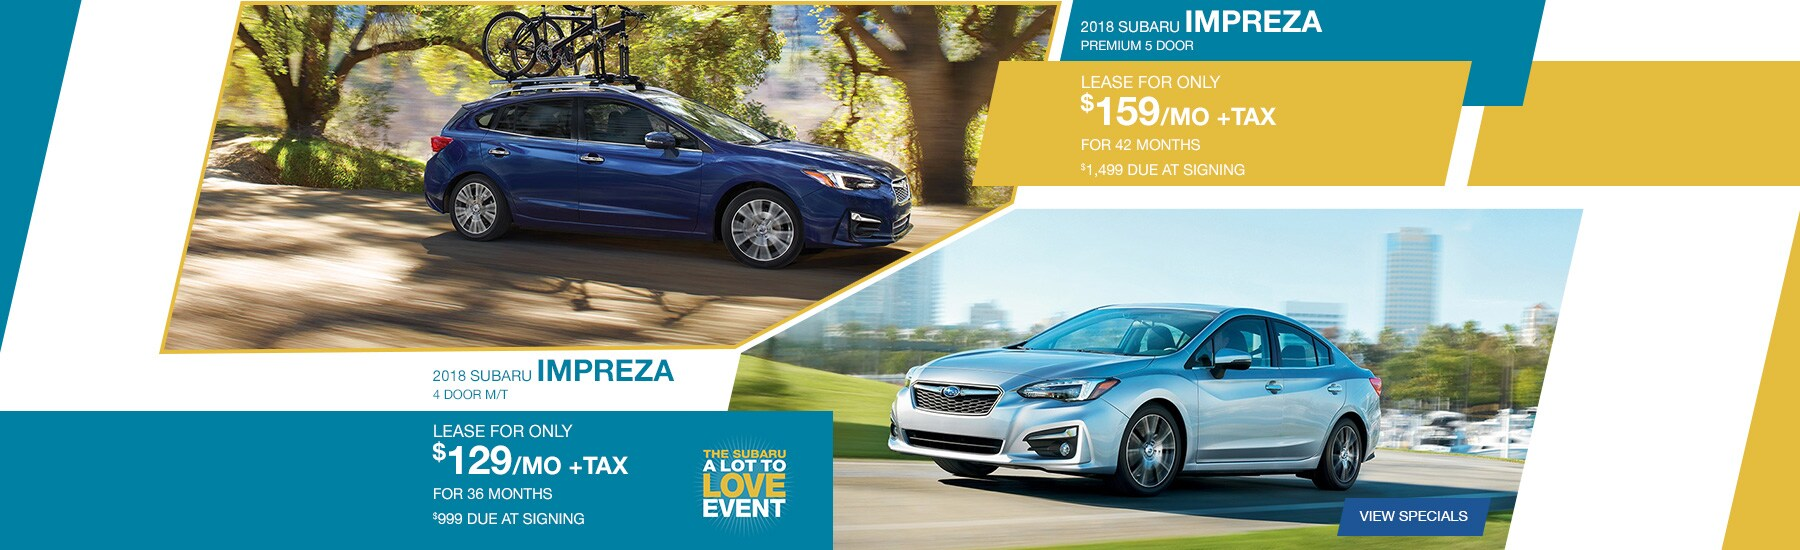 Subaru Pacific | New & Used Subaru Sales in Hawthorne, CA